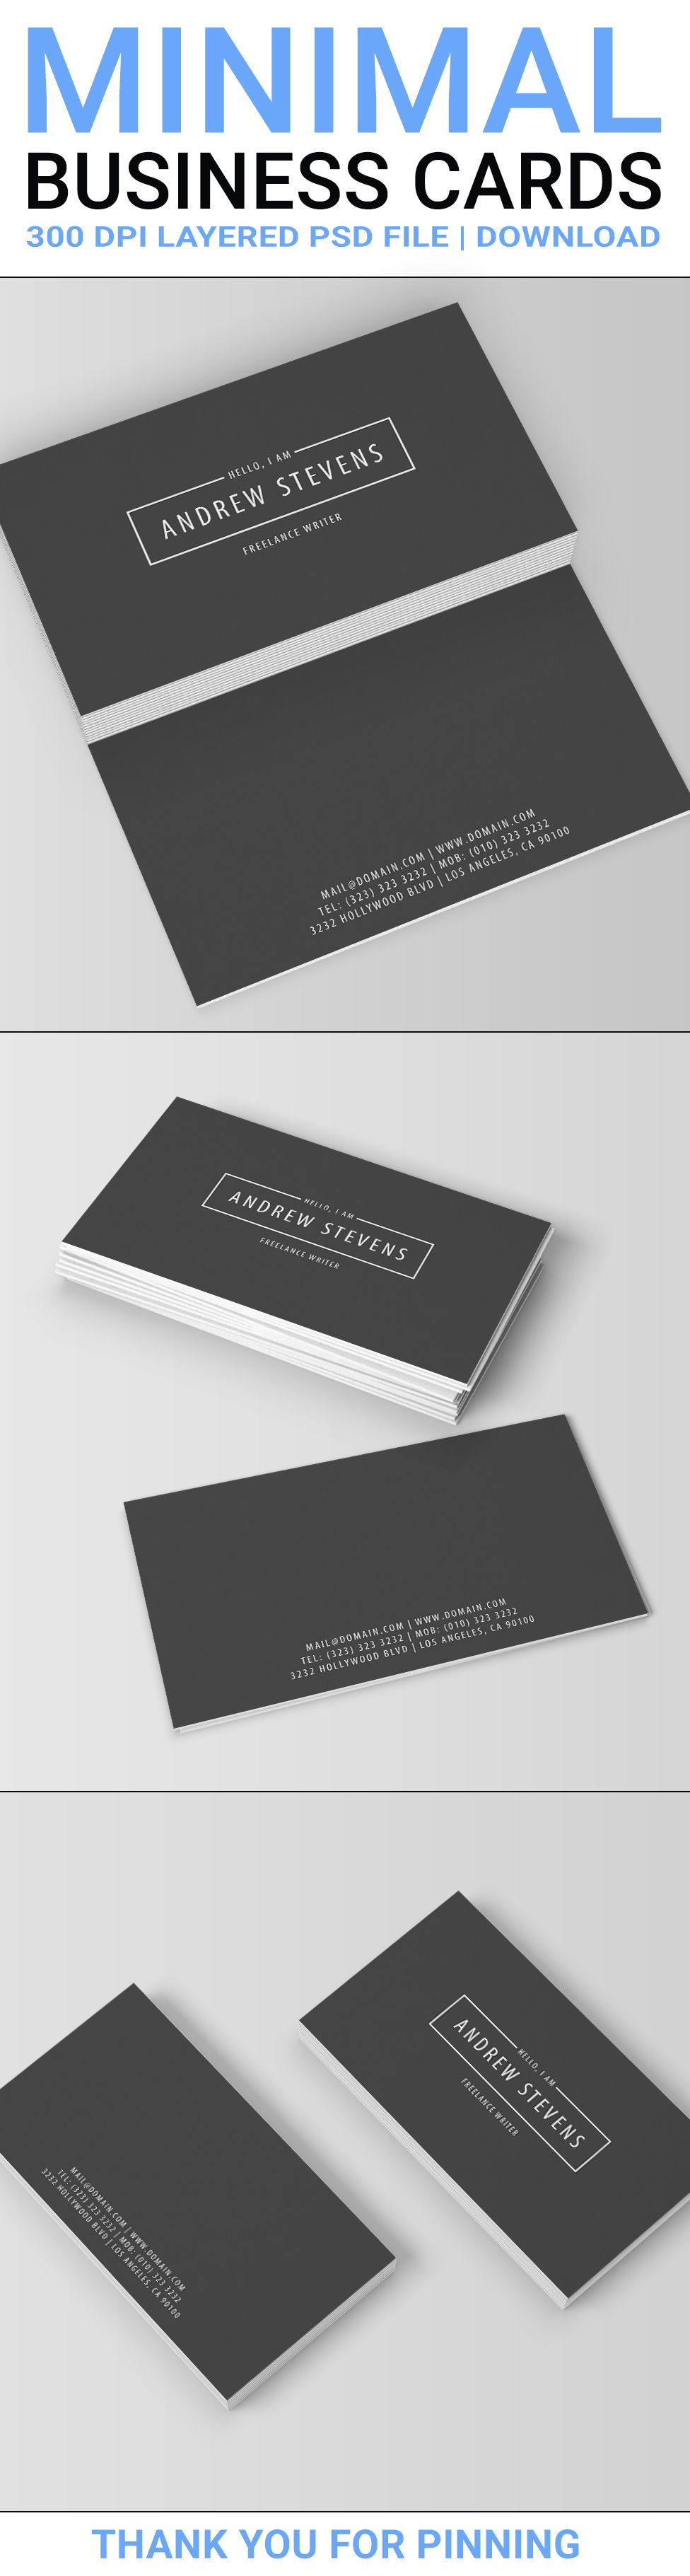 Modern minimal business cards template the two sided design minimal dark business cards template psd instant download 3 back site options reheart Gallery